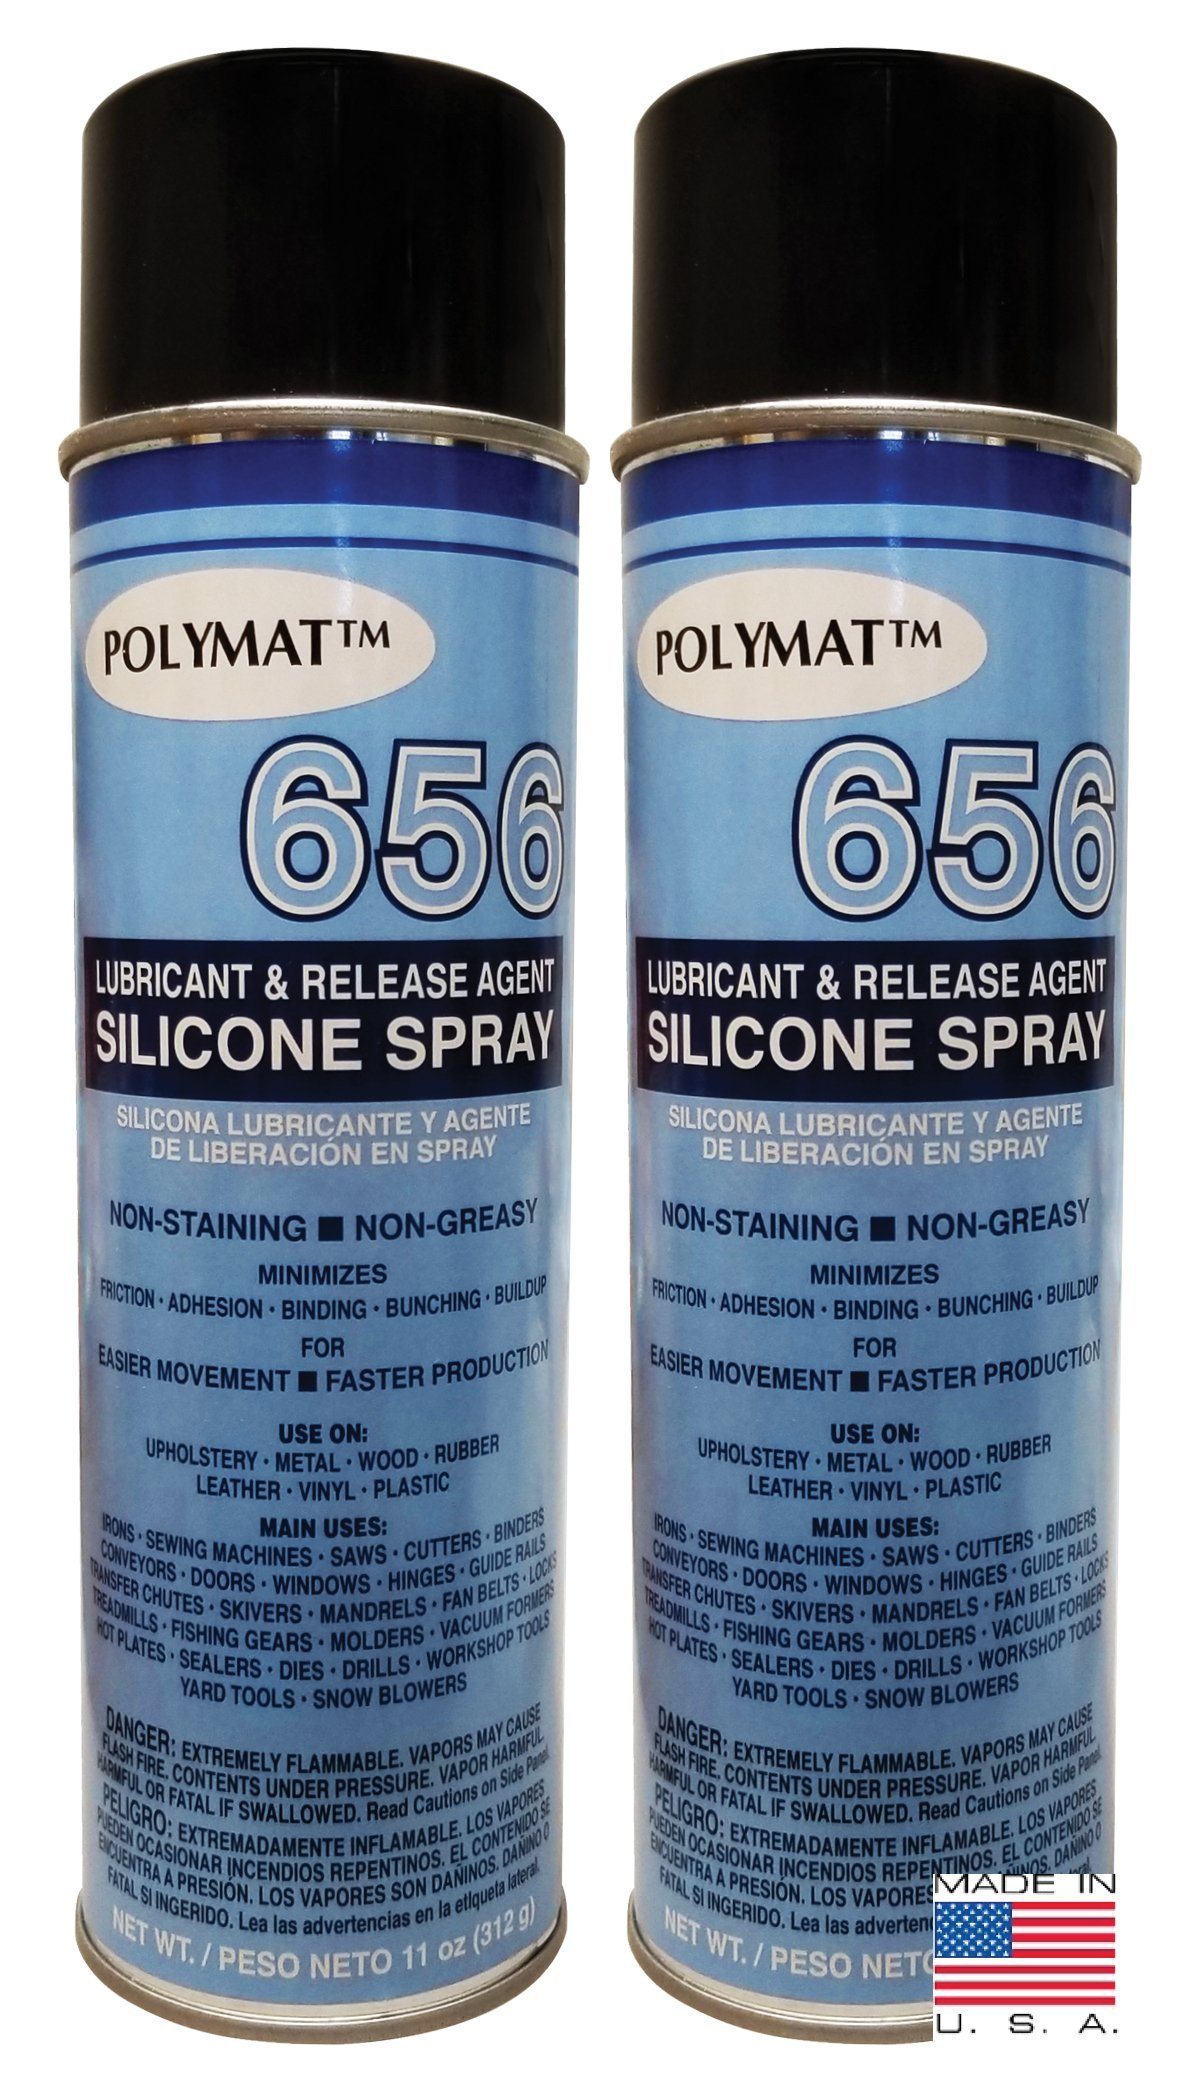 QTY 2 Polymat 656 SILICONE SPRAY NON GREASY LUBRICANT FOR DRILLS WORKSHOP TOOLS